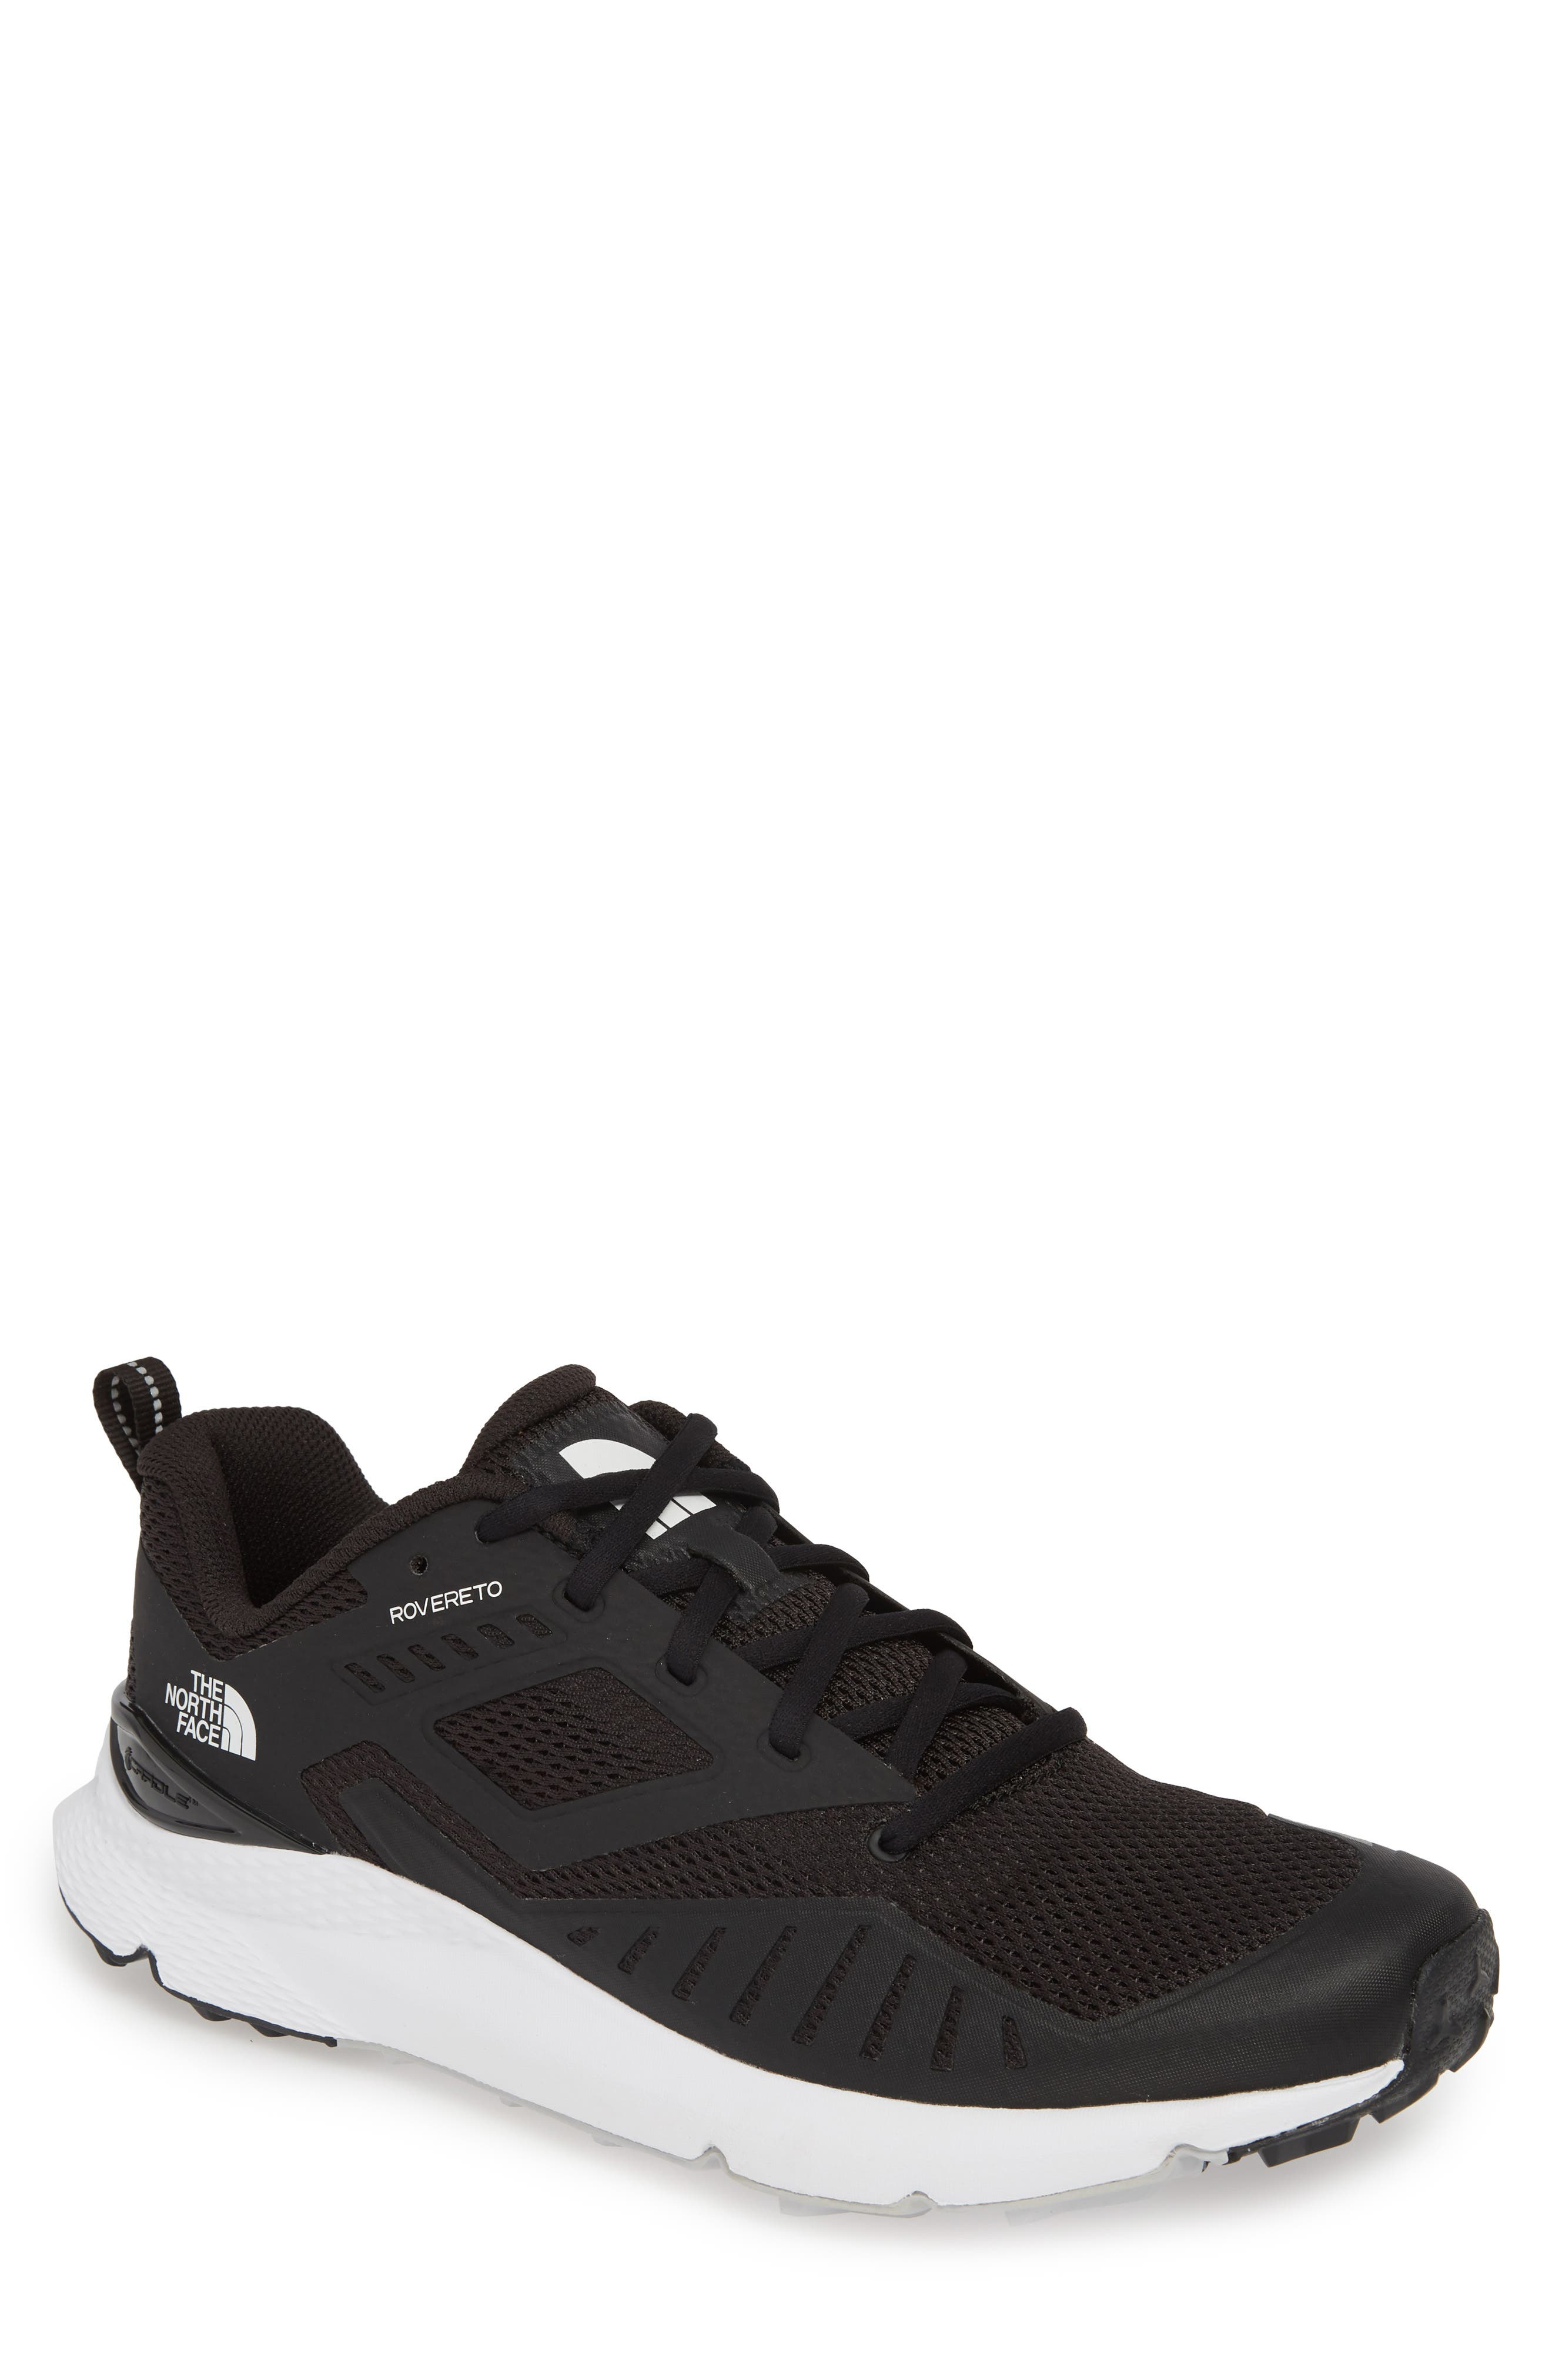 THE NORTH FACE Rovereto Running Shoe, Main, color, BLACK/ WHITE